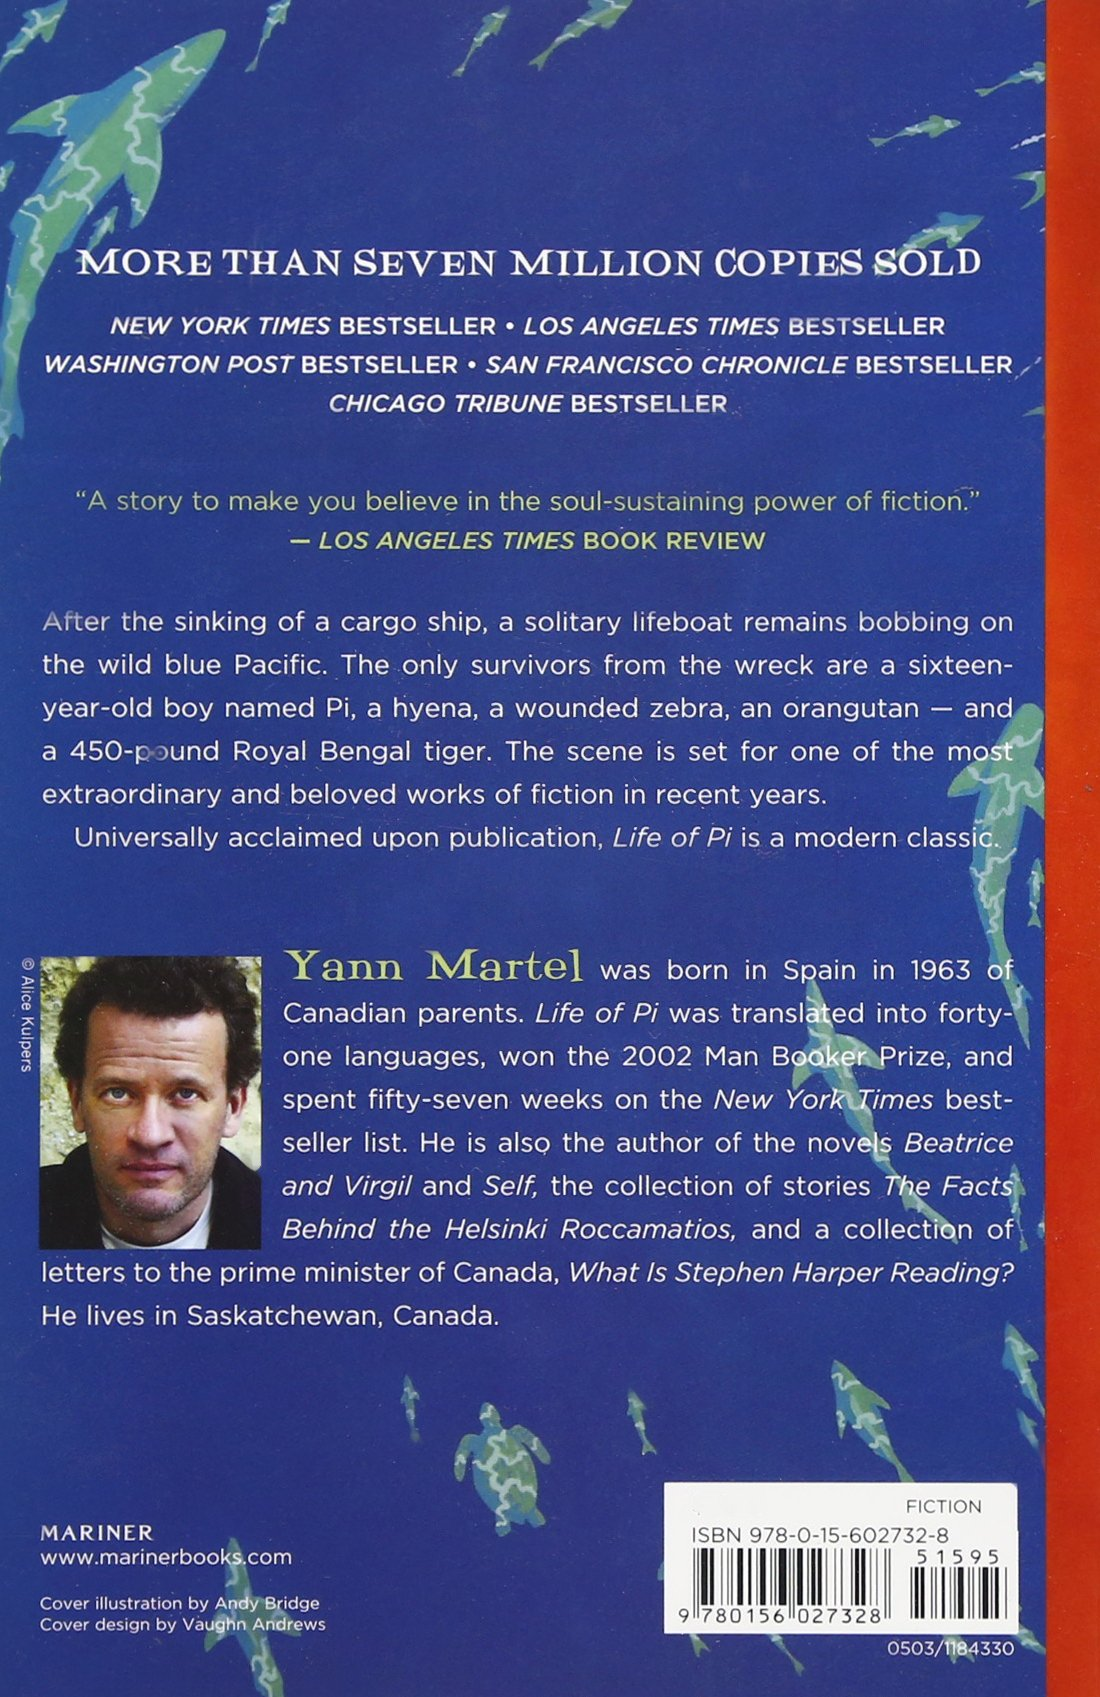 Amazon.com: Life of Pi (9780156027328): Yann Martel: Books